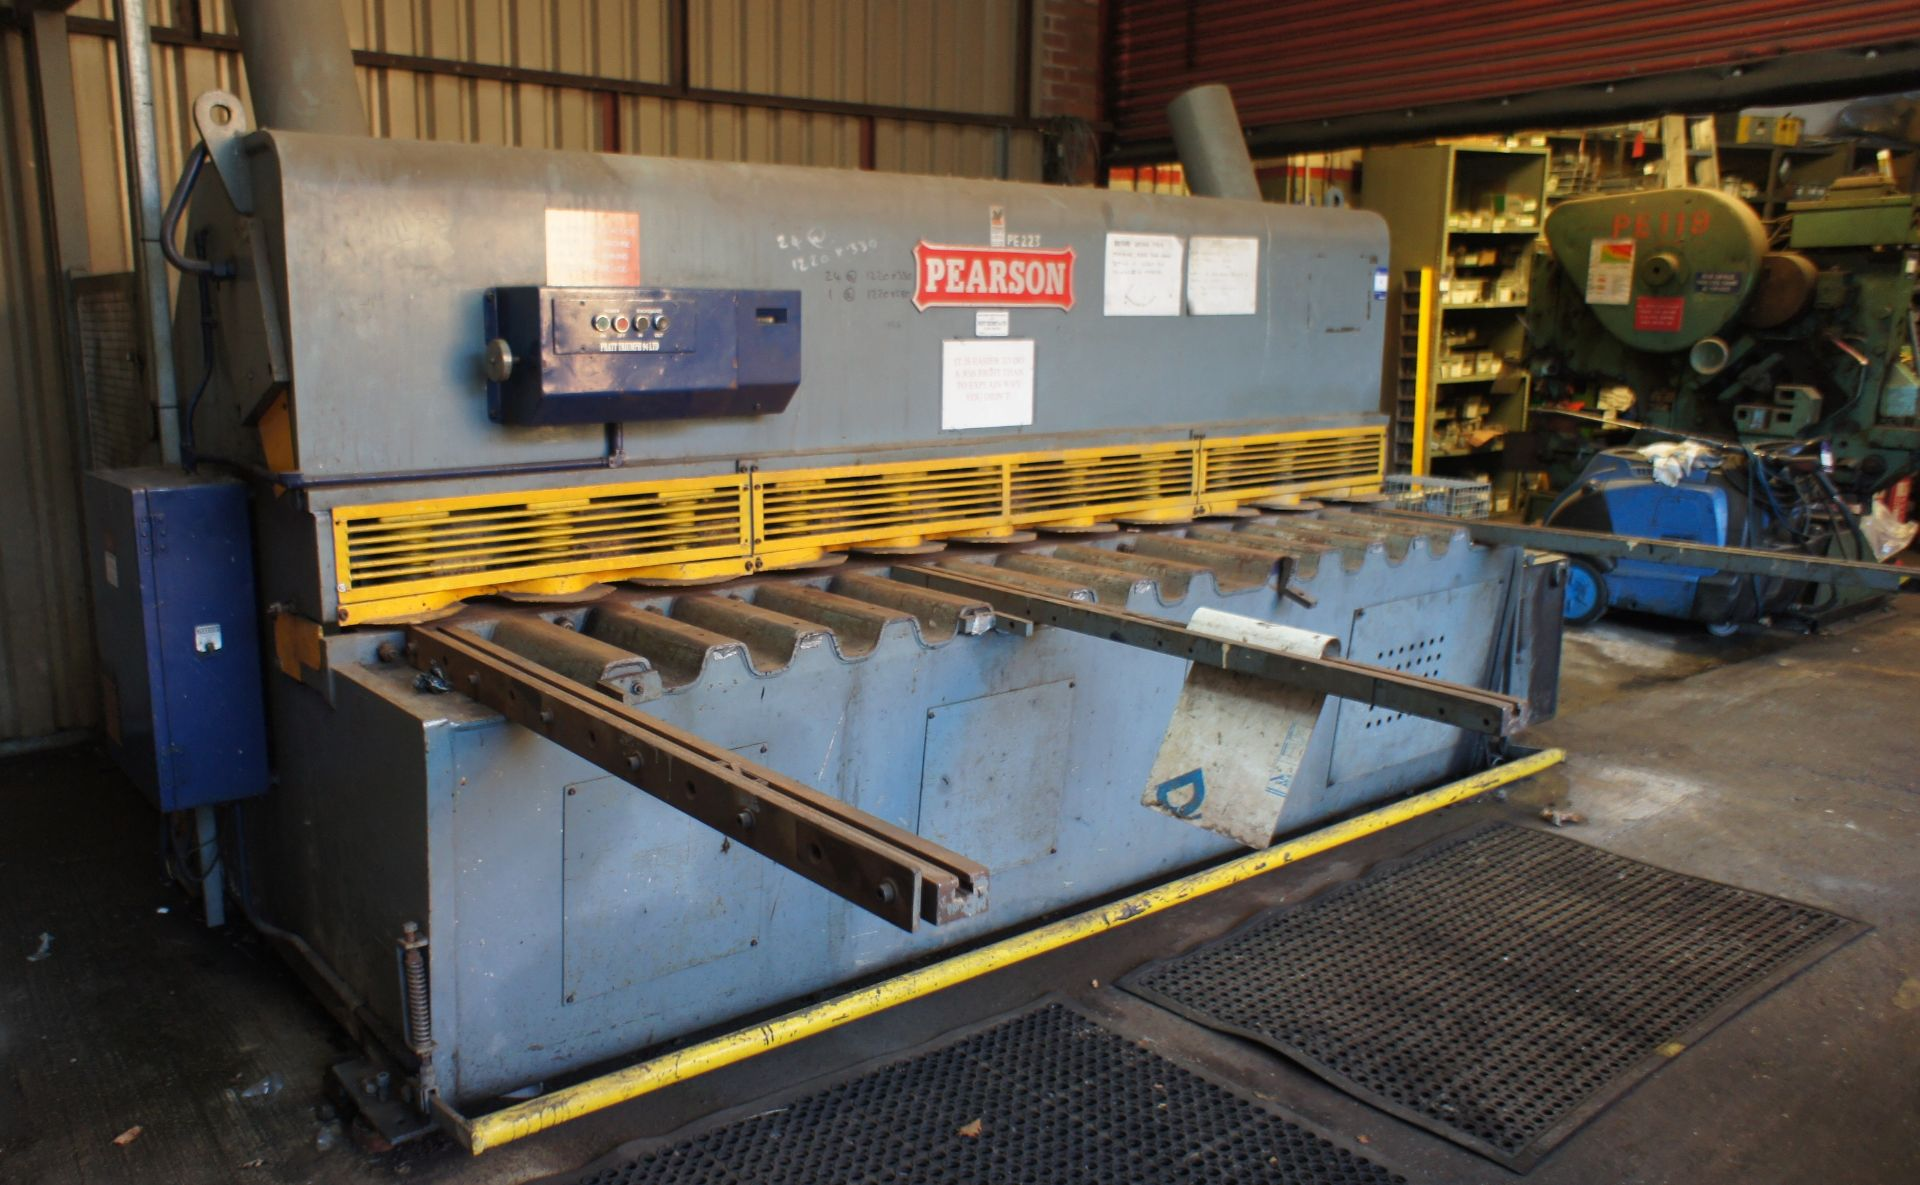 Pearson Hydraulic Guillotine, 3500mm x 10mm, 415v